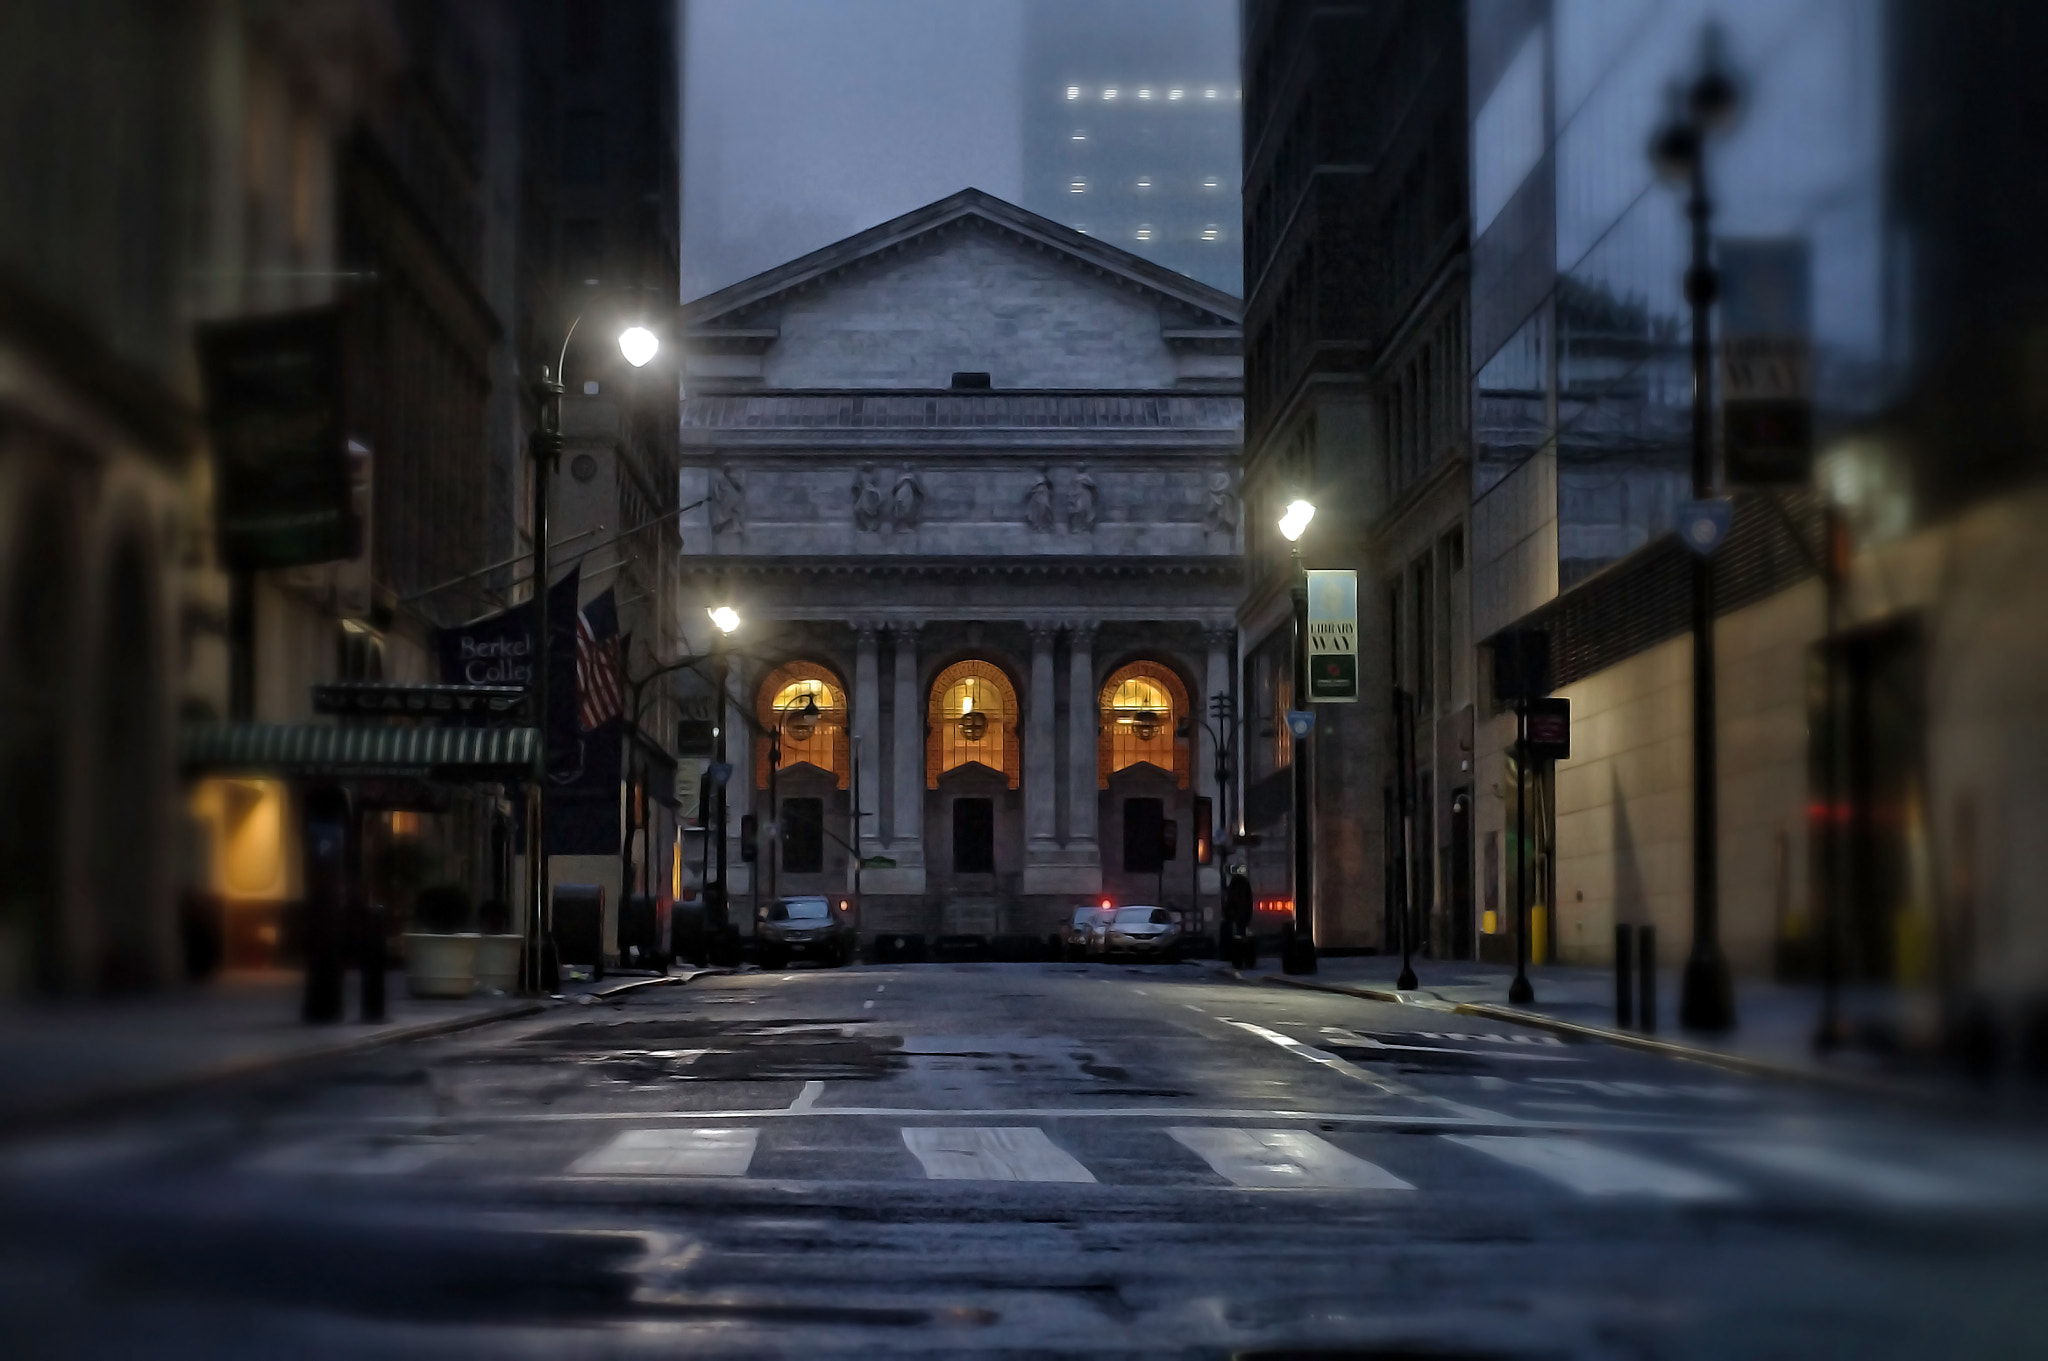 Photograph Public Library by Jay B. Wilson on 500px